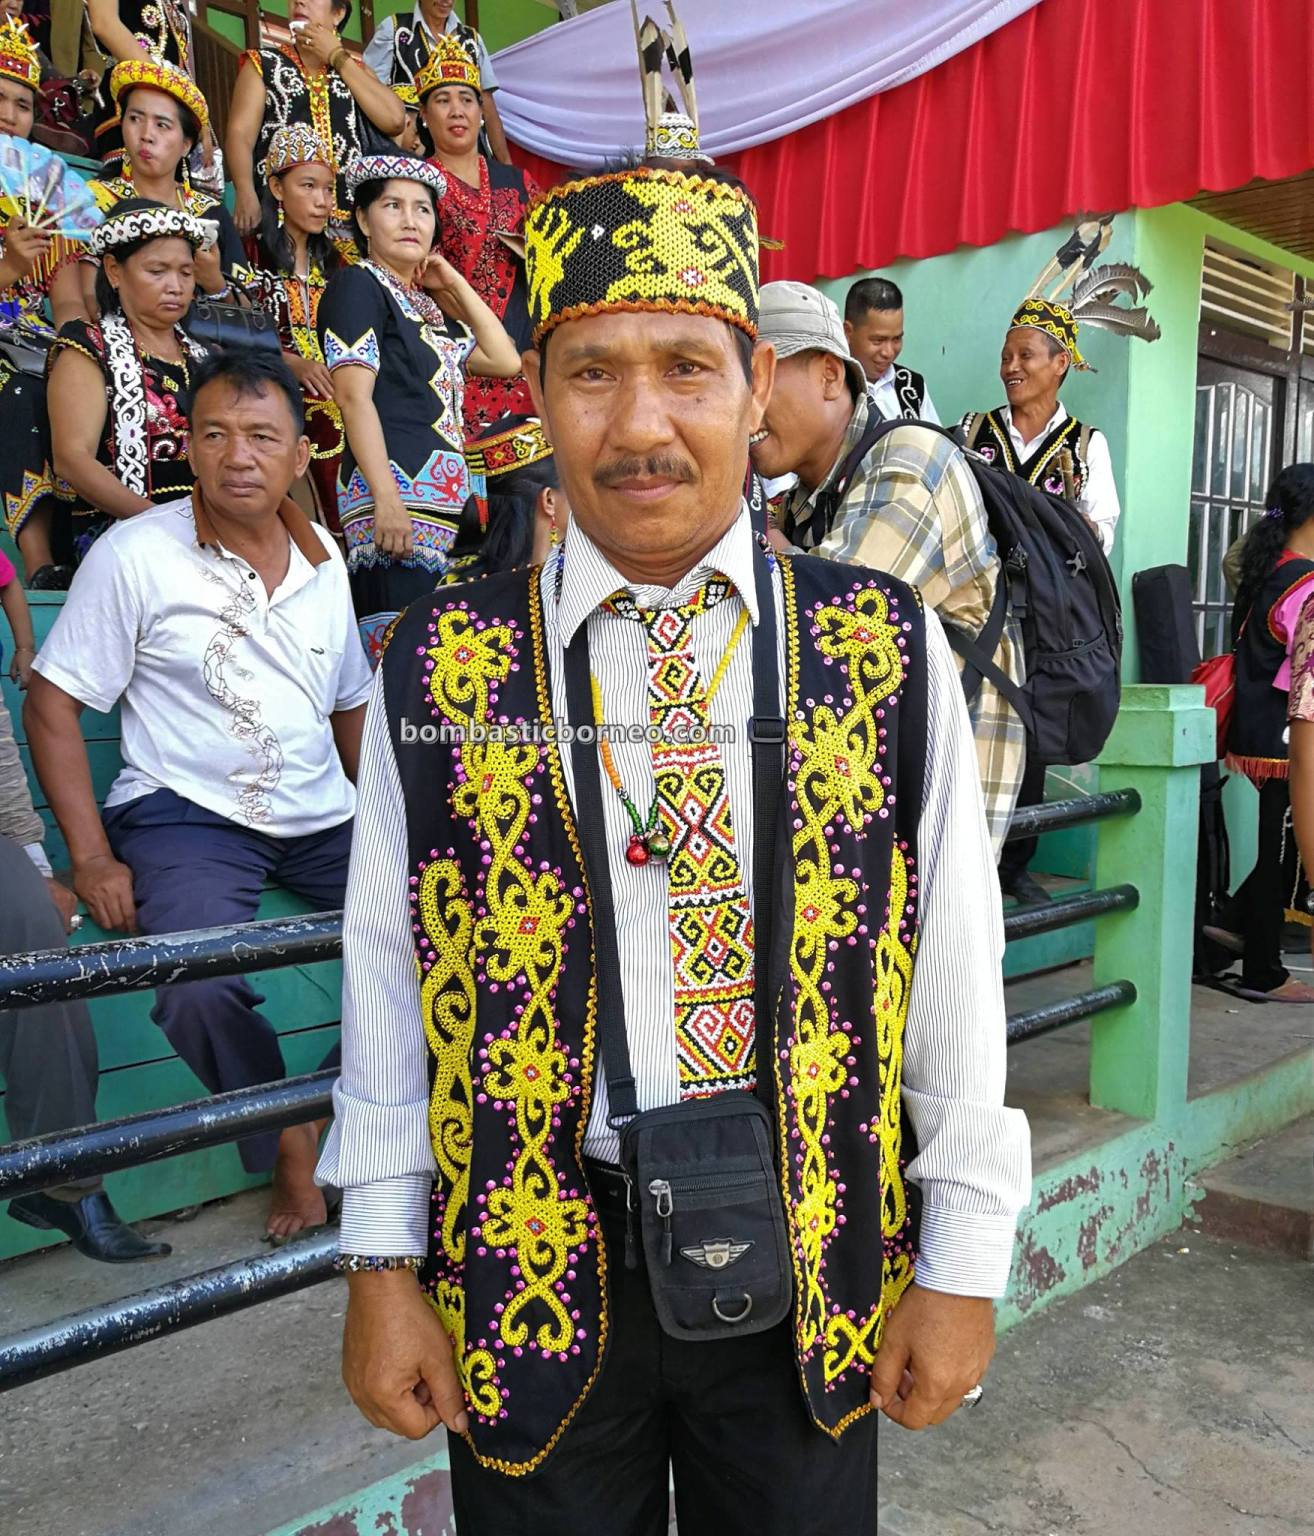 Gawai harvest festival, authentic, event, budaya, Indonesia, West Kalimantan, Putussibau, Ethnic, native, Suku Dayak, Obyek wisata, Trans Border, 跨境婆罗洲游踪, 印尼甘布安斯乌鲁, 富都原住民丰收节